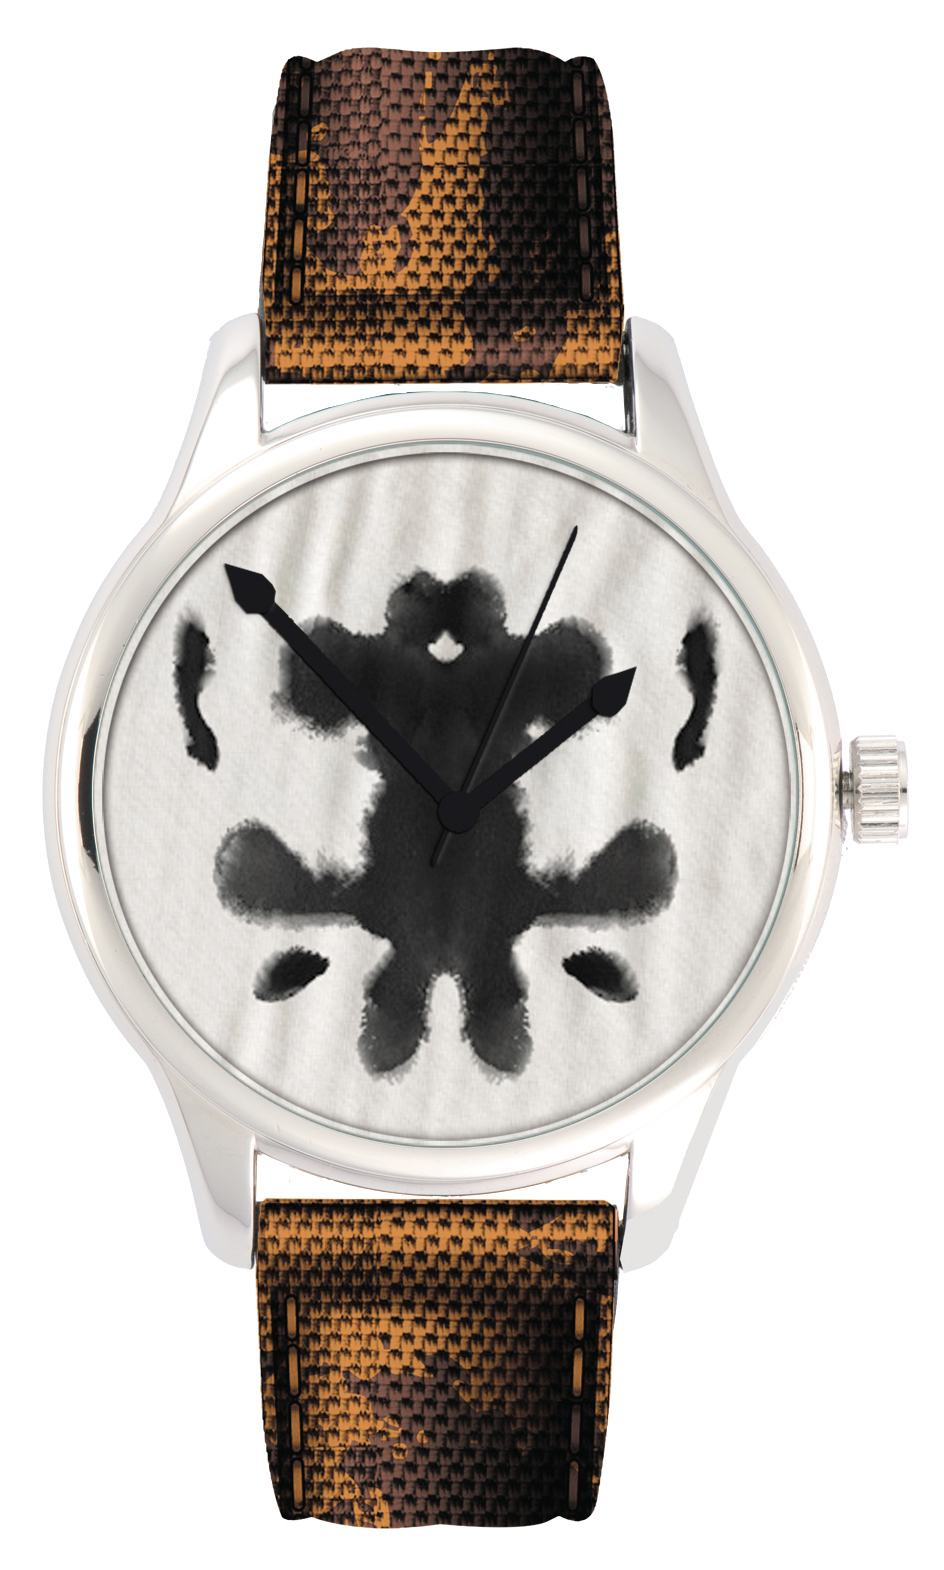 Relogio-de-Pulso-Watchmen-Rorschach-DC-Watch-Collection-02